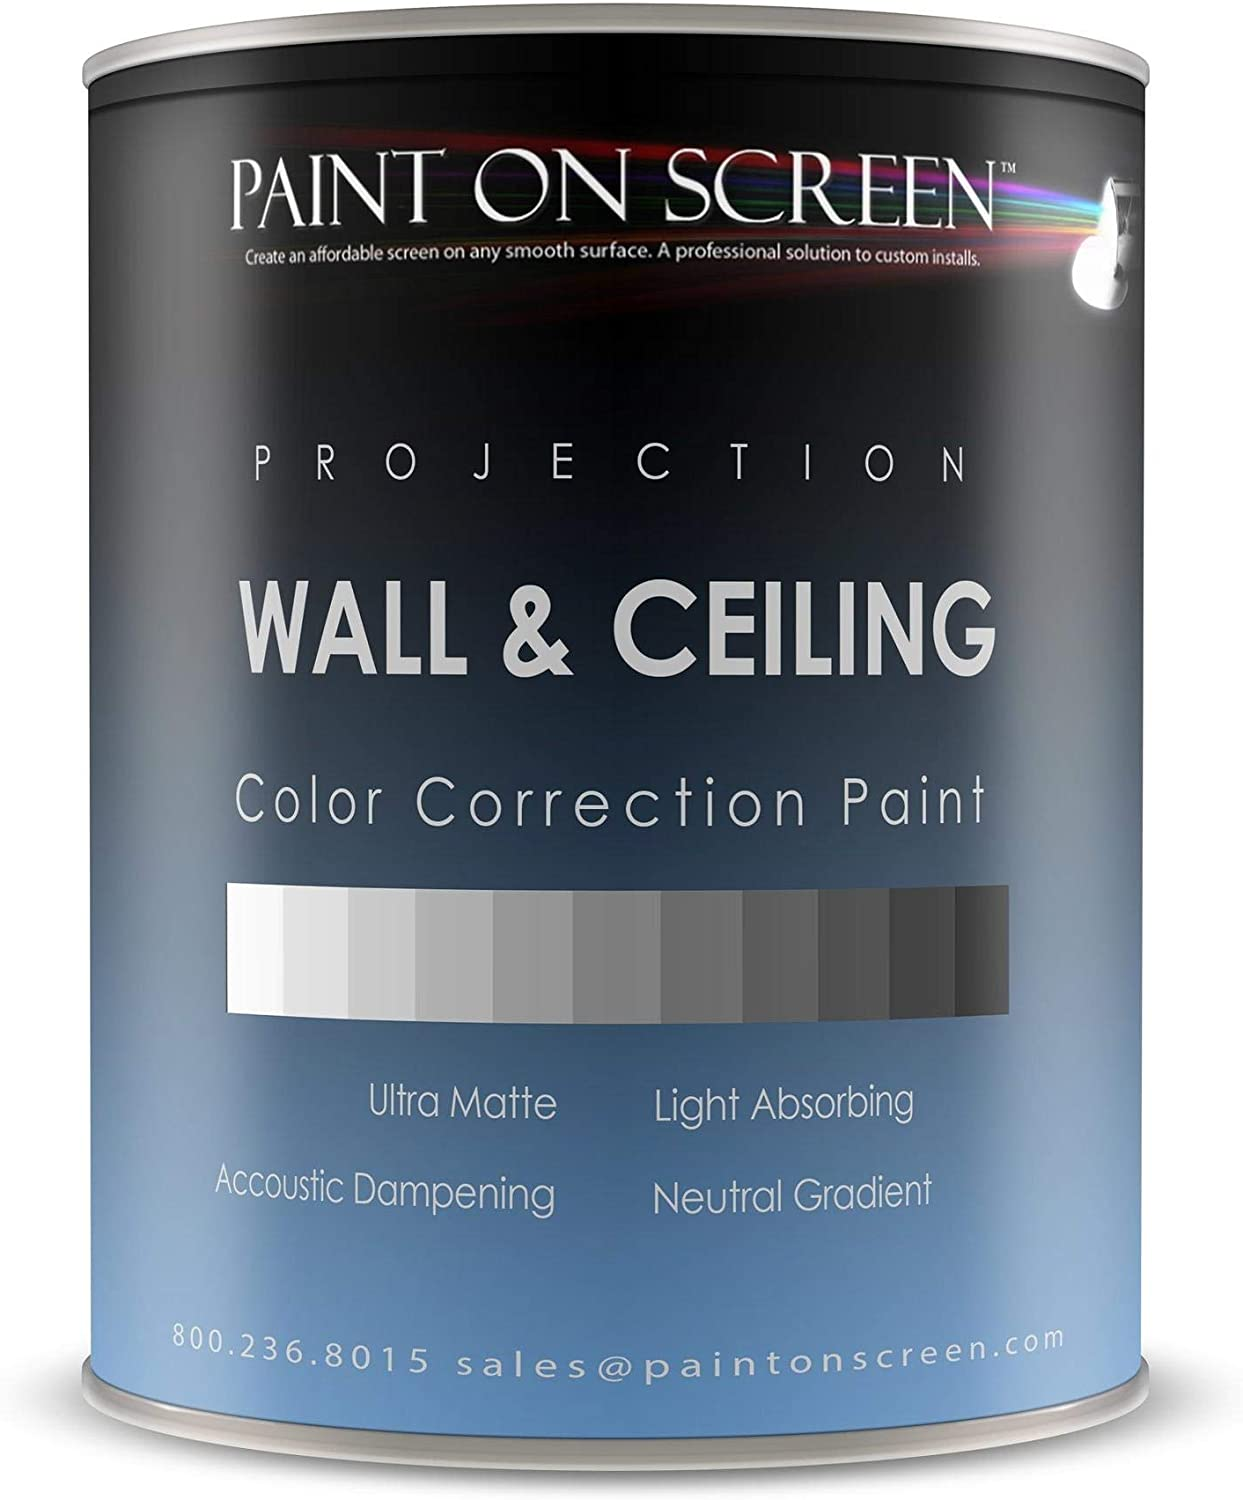 Projector Screen Paint - Wall/Ceiling Ambient Light Rejecting Acoustic Dampening -Studio Grey-Gallon